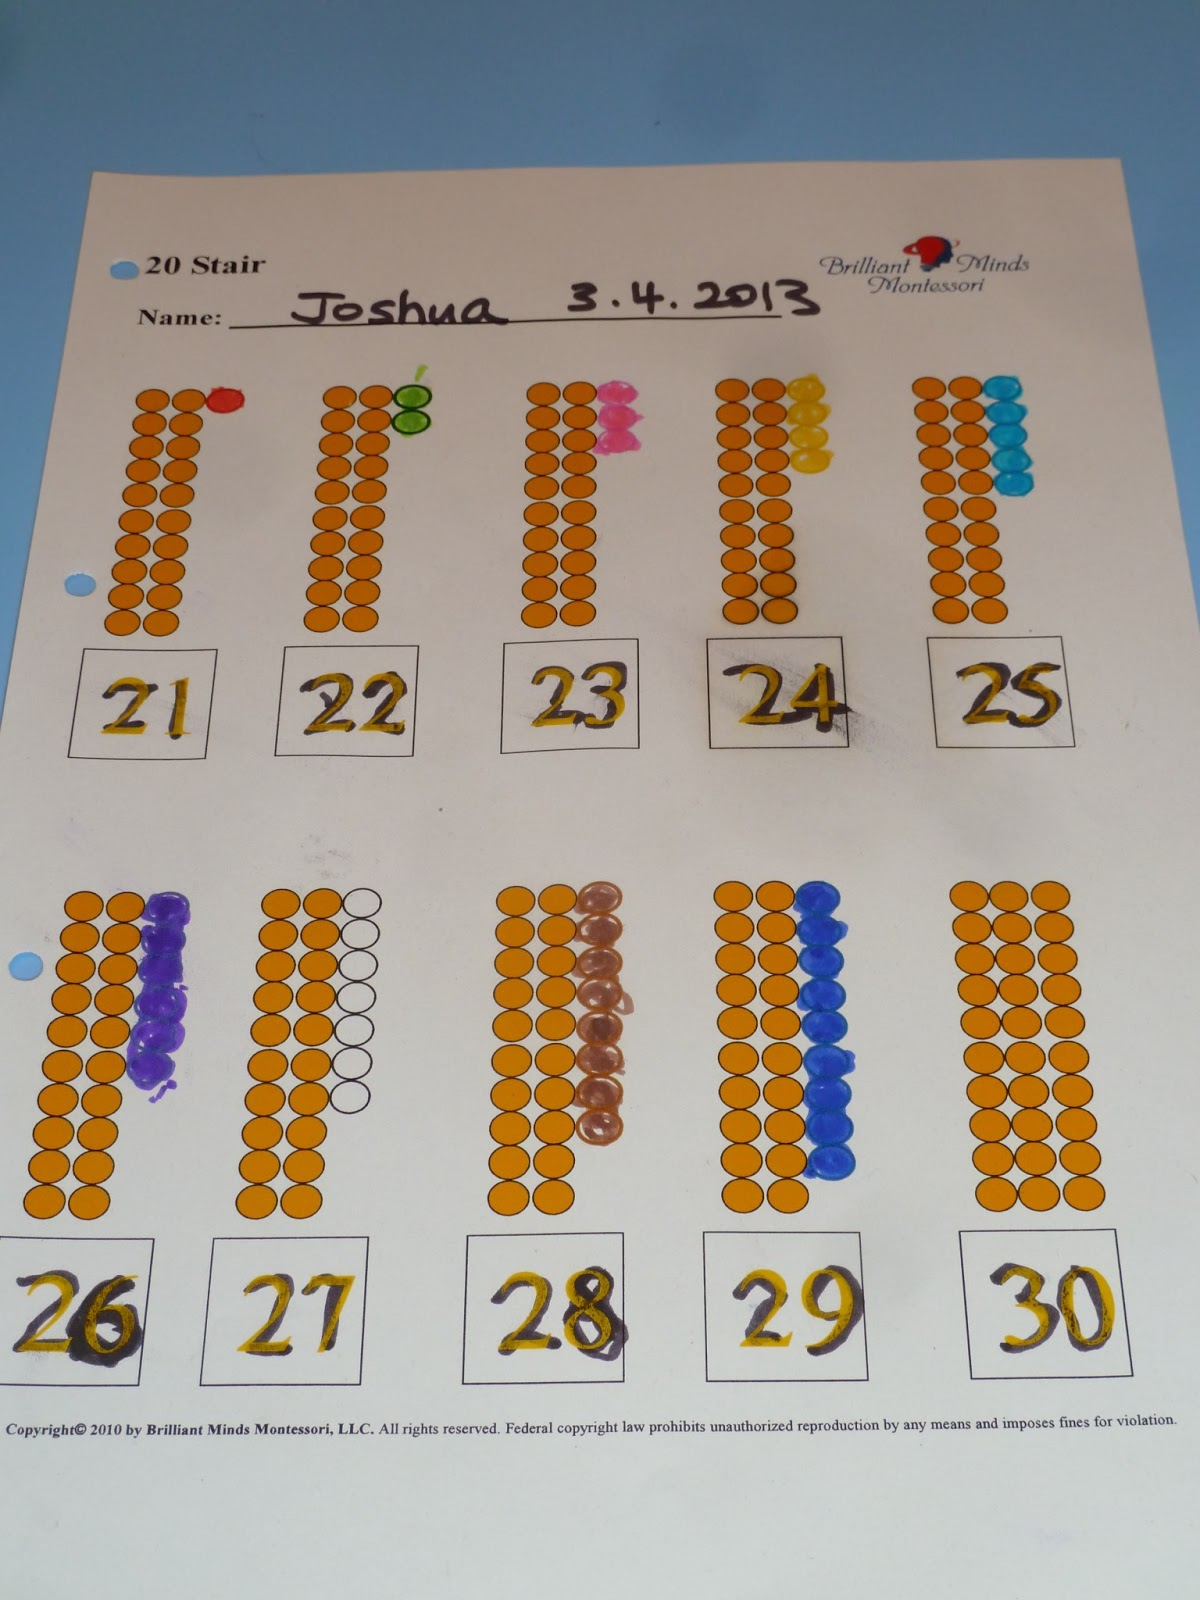 Uncategorized Montessori Math Worksheets family fecs april 2013 i like brilliant minds montessori maths curriculum for its simplicity and clarity it is a good systematic way to teach counting number recognition